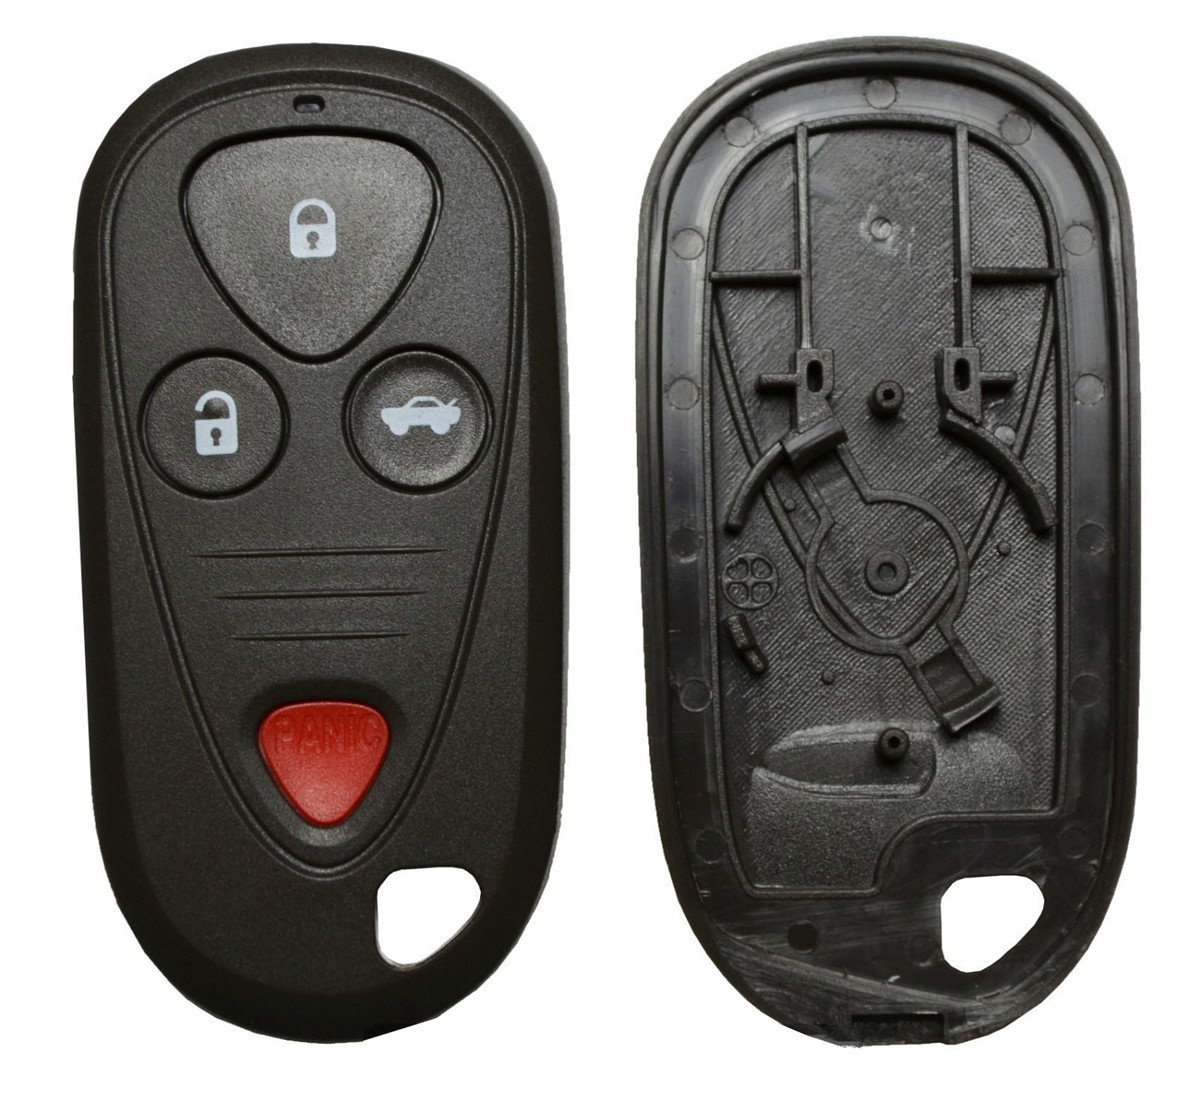 New Replacement Remote Key Keyless Fob Case 4 Buttons Tsx Alarm Wiring Diagram Shell For Acura Tl Rl Cl Just A Empty No Chips Inside Automotive